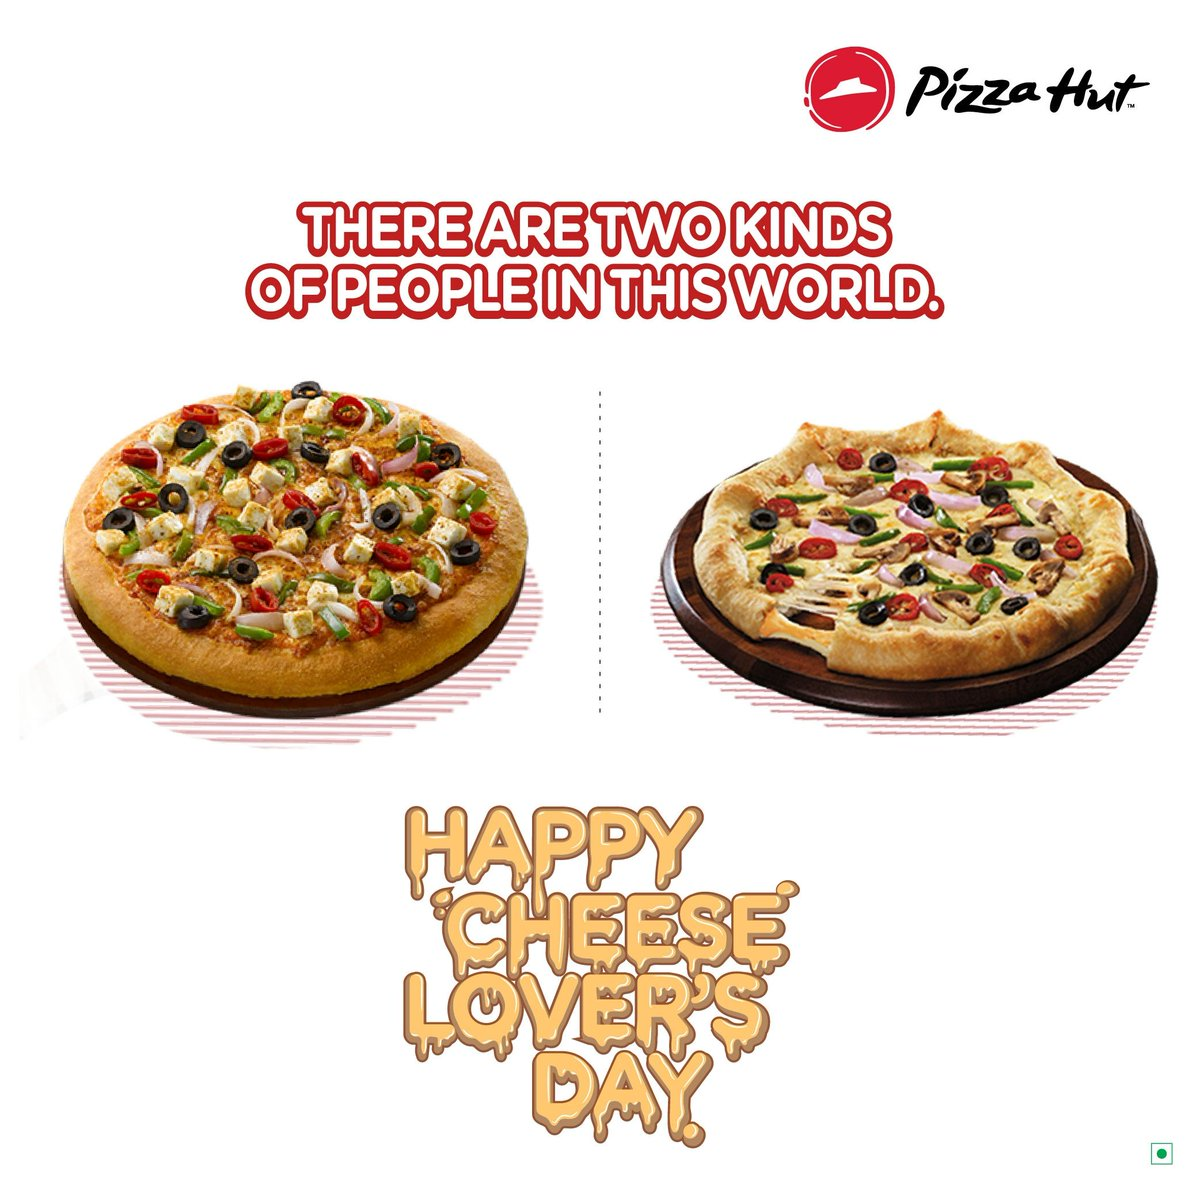 To cheese or not to cheese. That s the question. HappyCheeseLoversDay https t.co G957hQcO6r